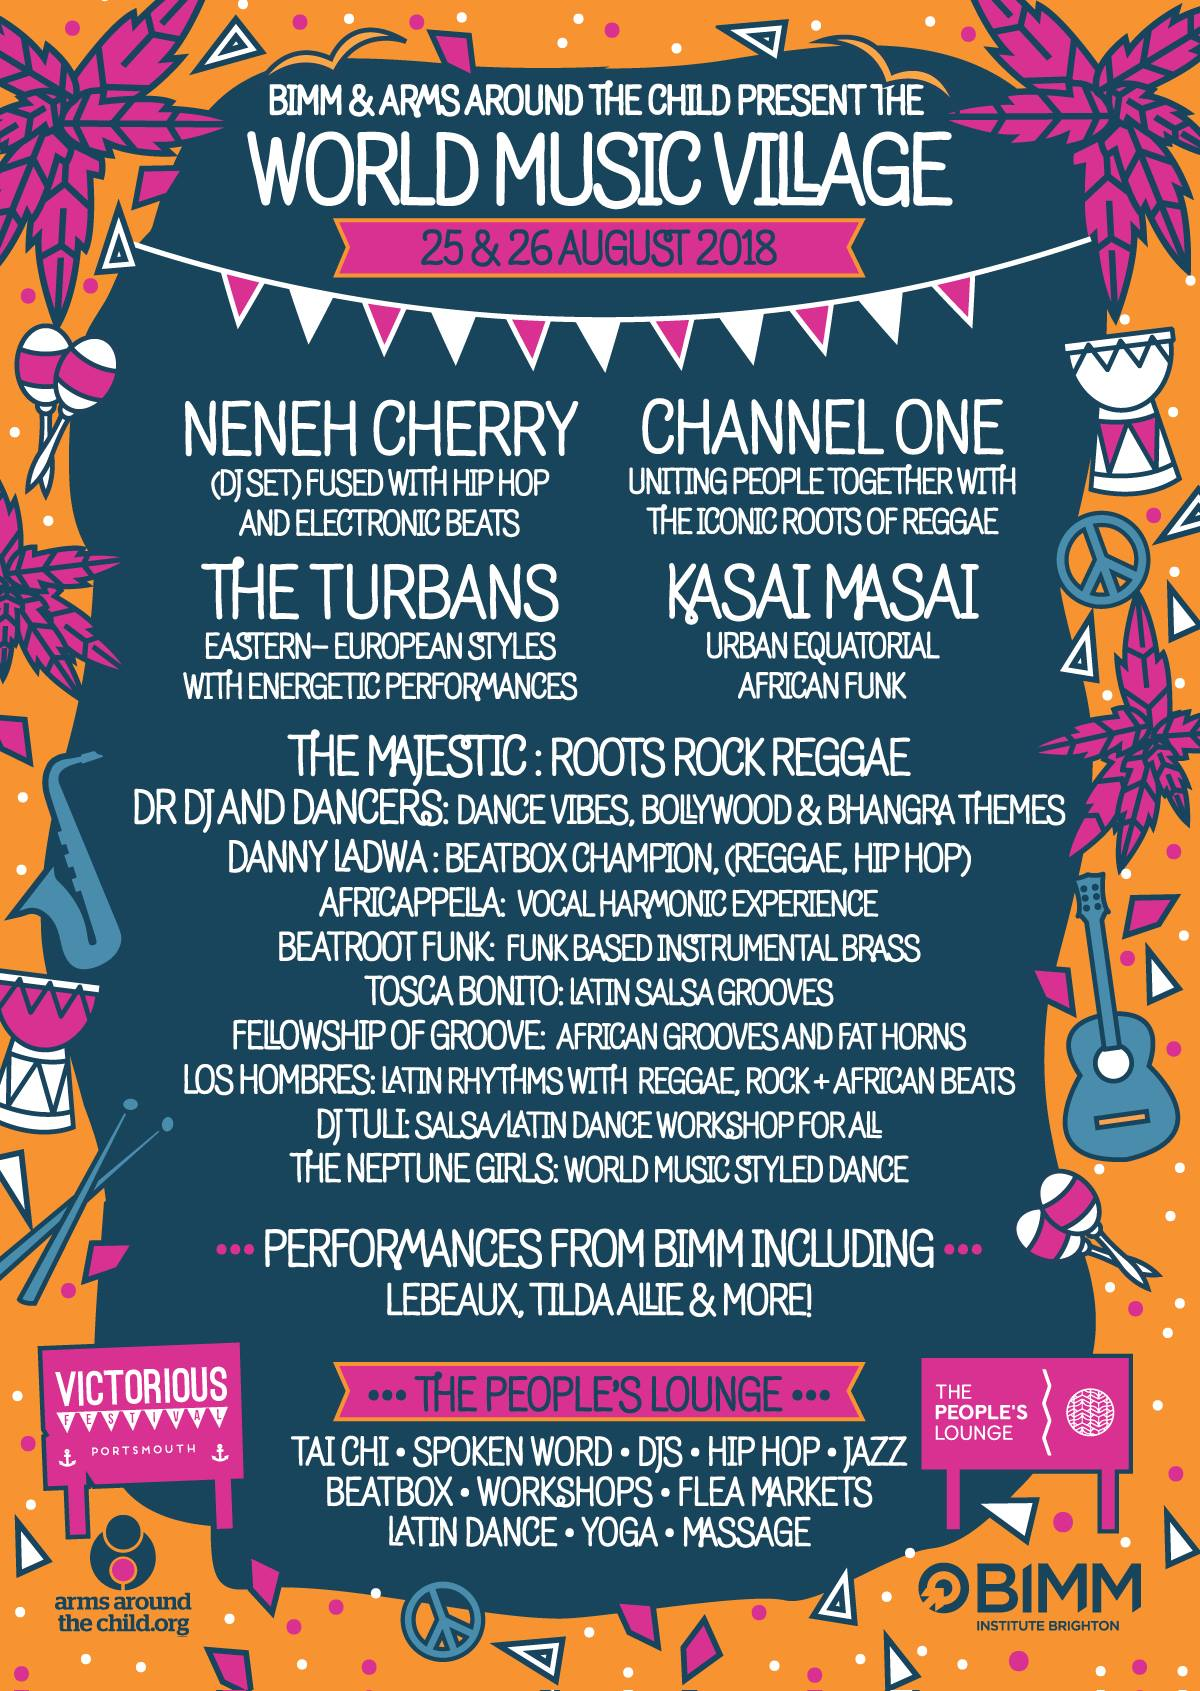 World Music Village 2018, Victorious, Southsea, Neneh Cherry